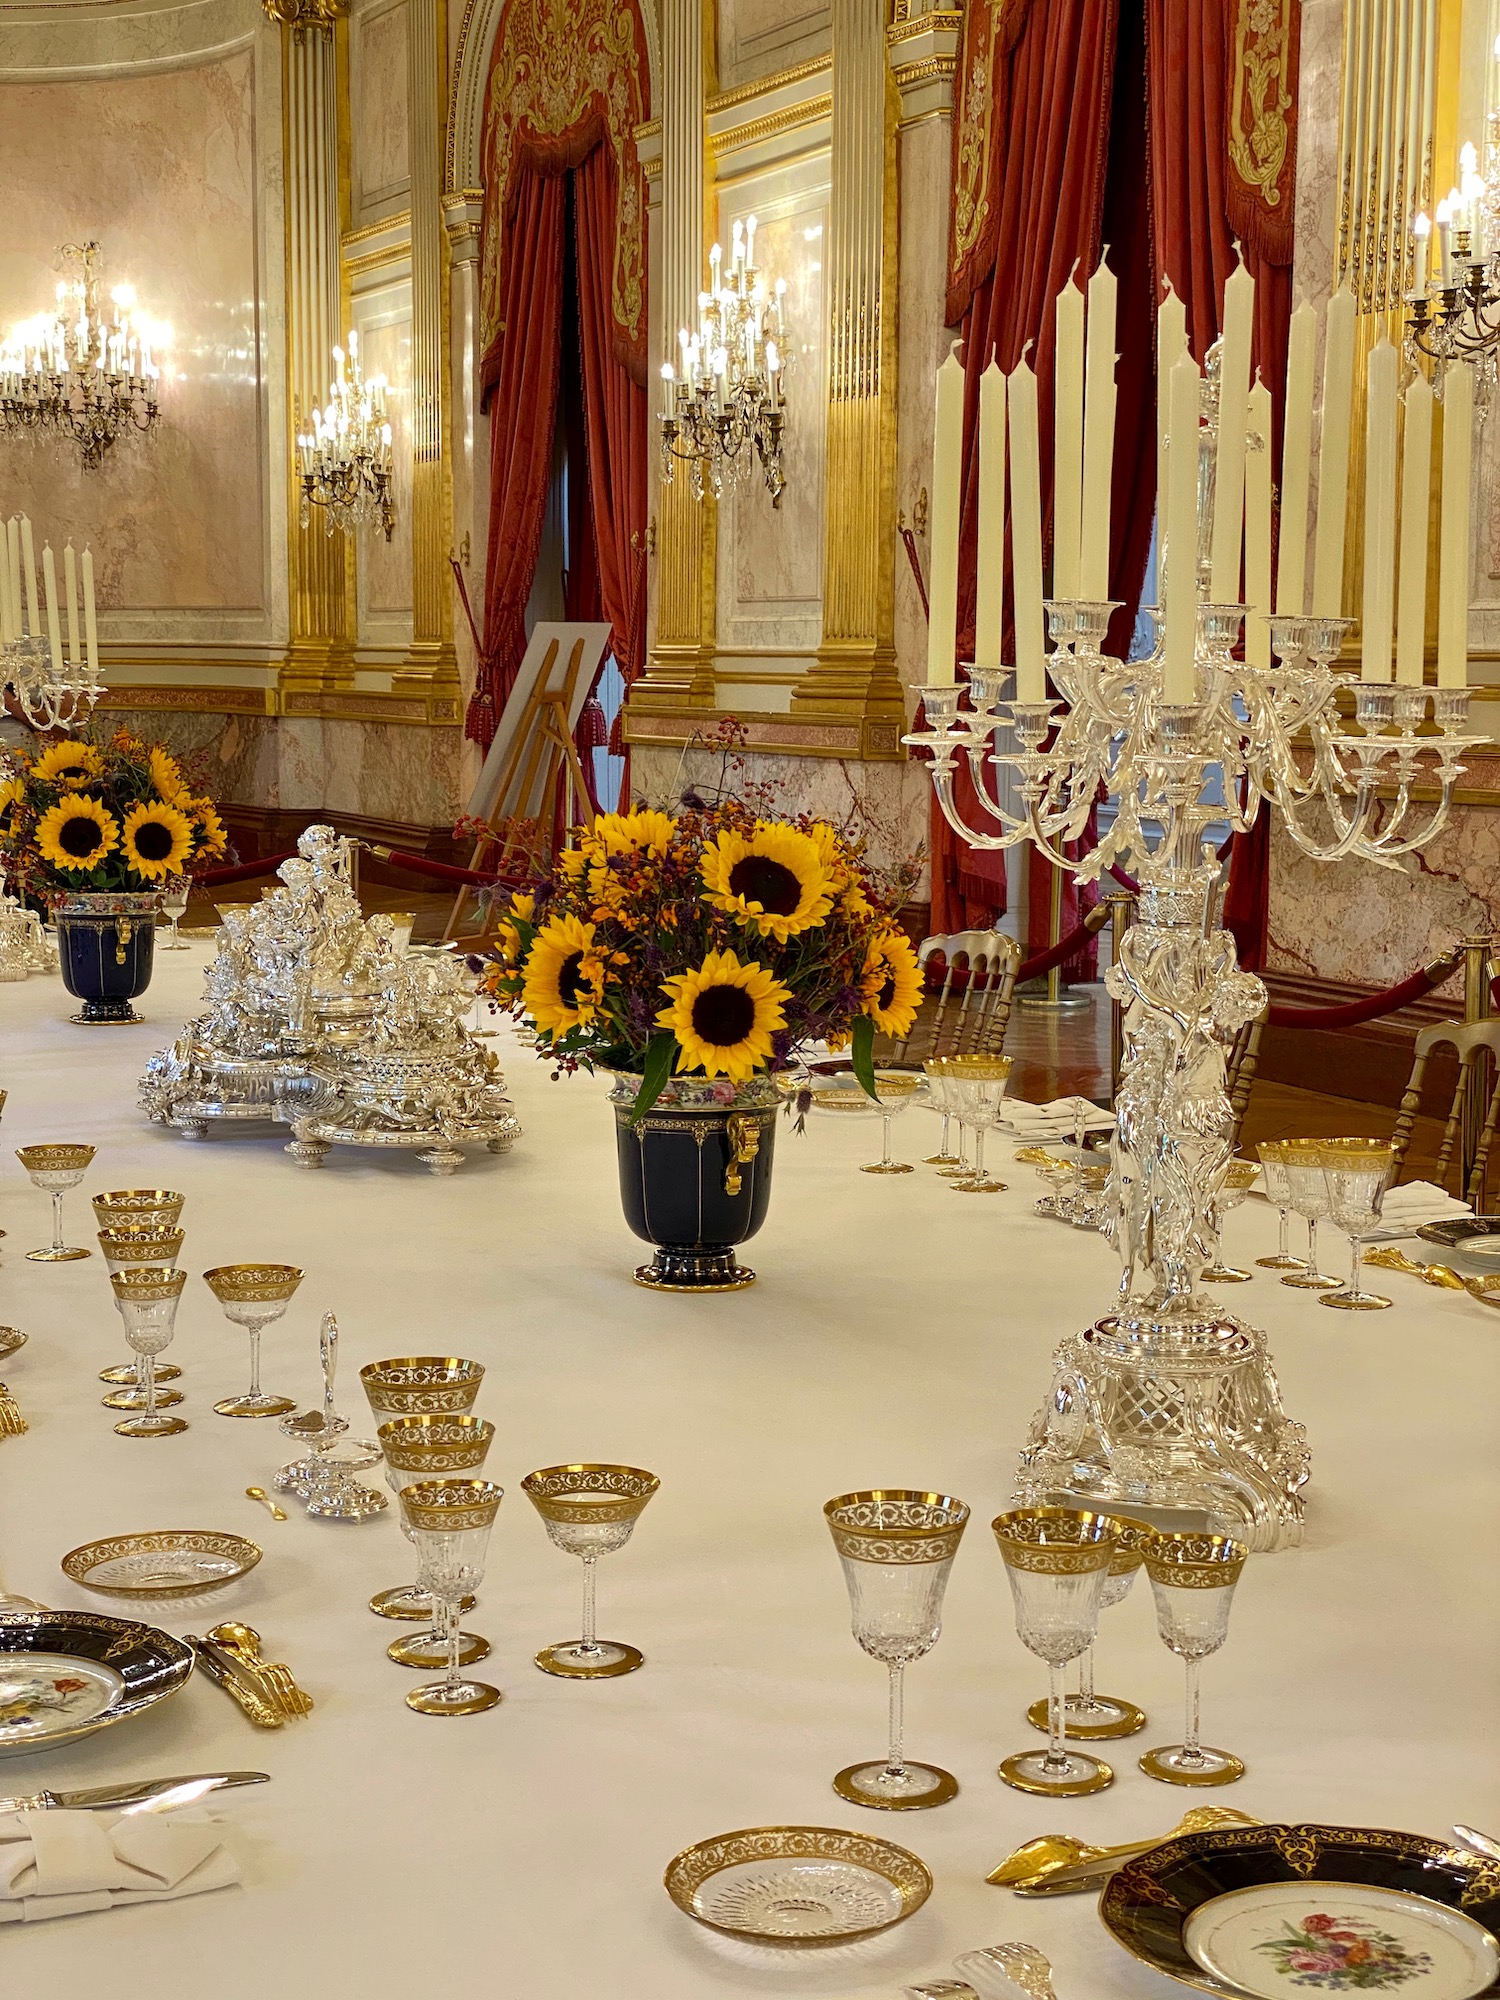 table with Saint Louis crystal and Sèvres porcelain